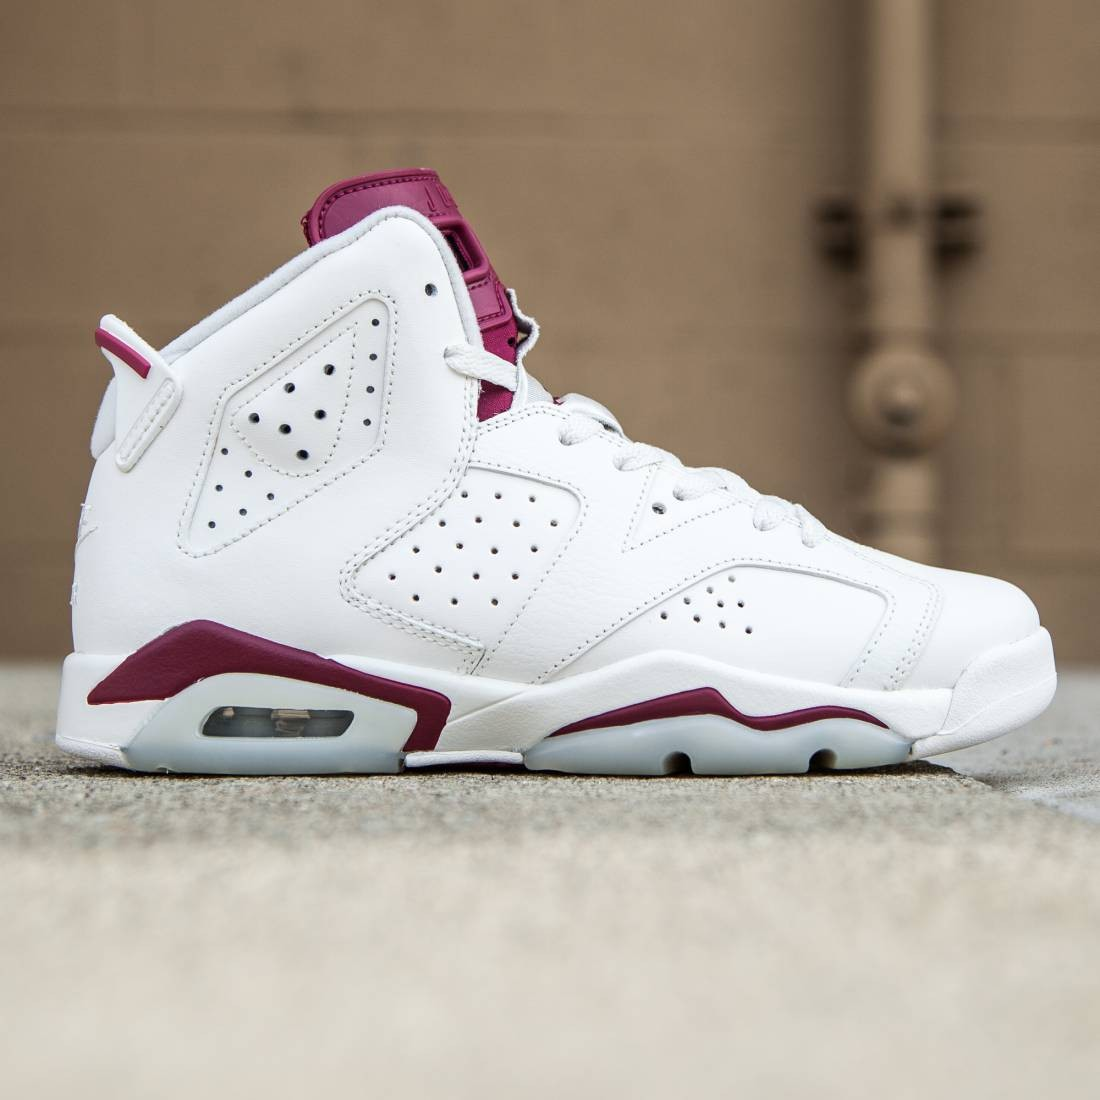 938c631aba4f ... Jordan Big Kids Air Jordan 6 Retro OG BG (white off white new maroon)  ...